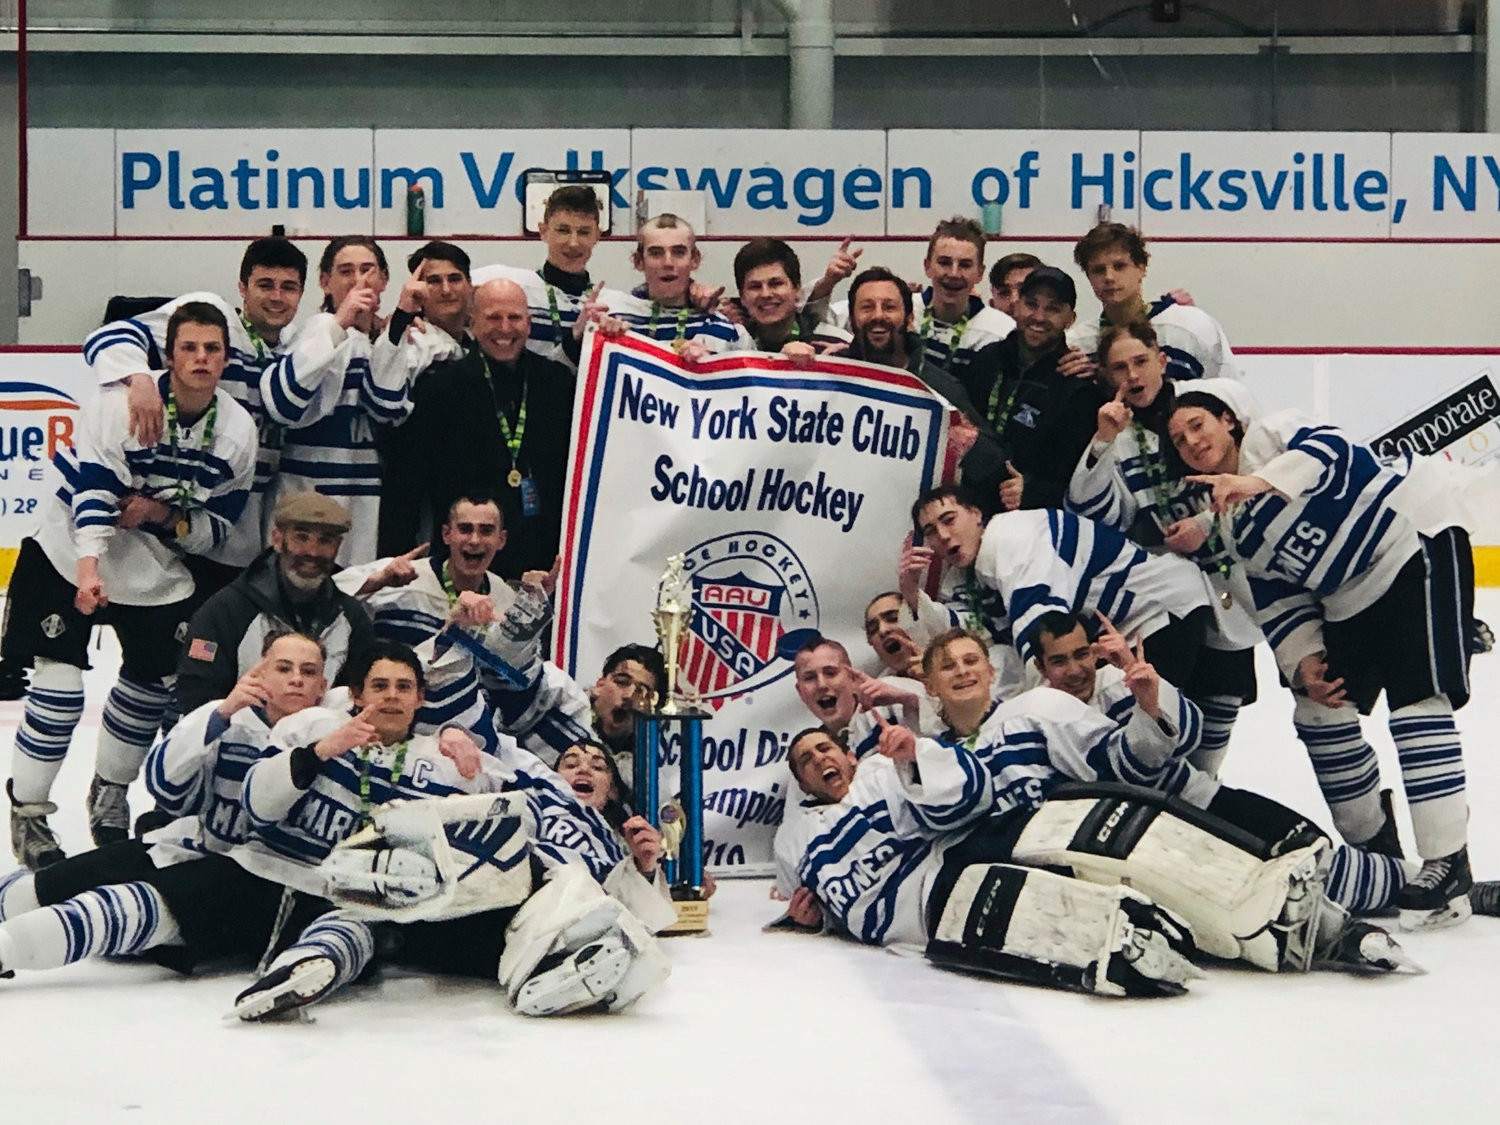 The Marines captured the New York State AAU ice hockey championship on March 3.